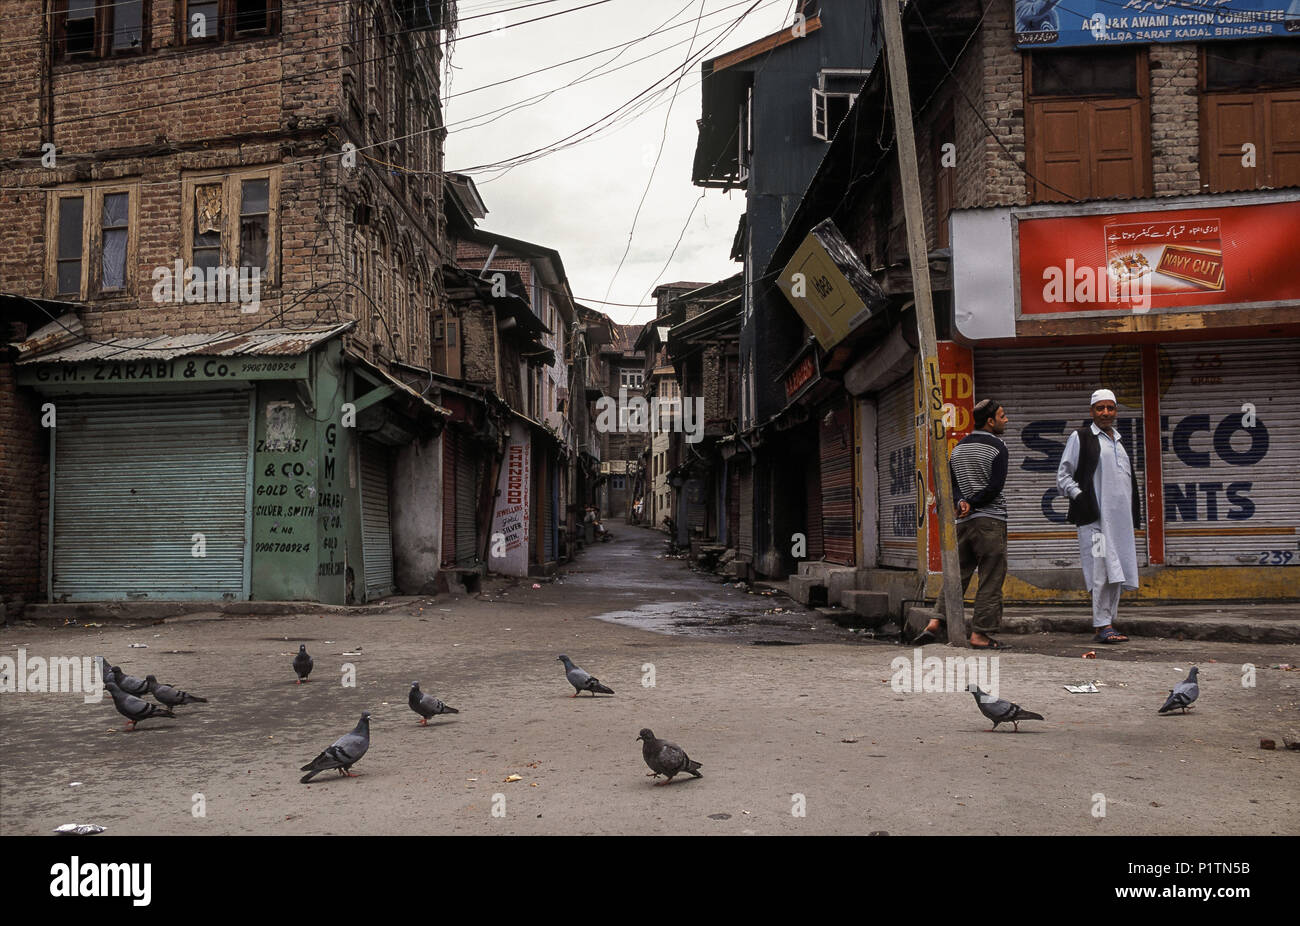 Srinagar, India, men during the exit barrier on the street Stock Photo